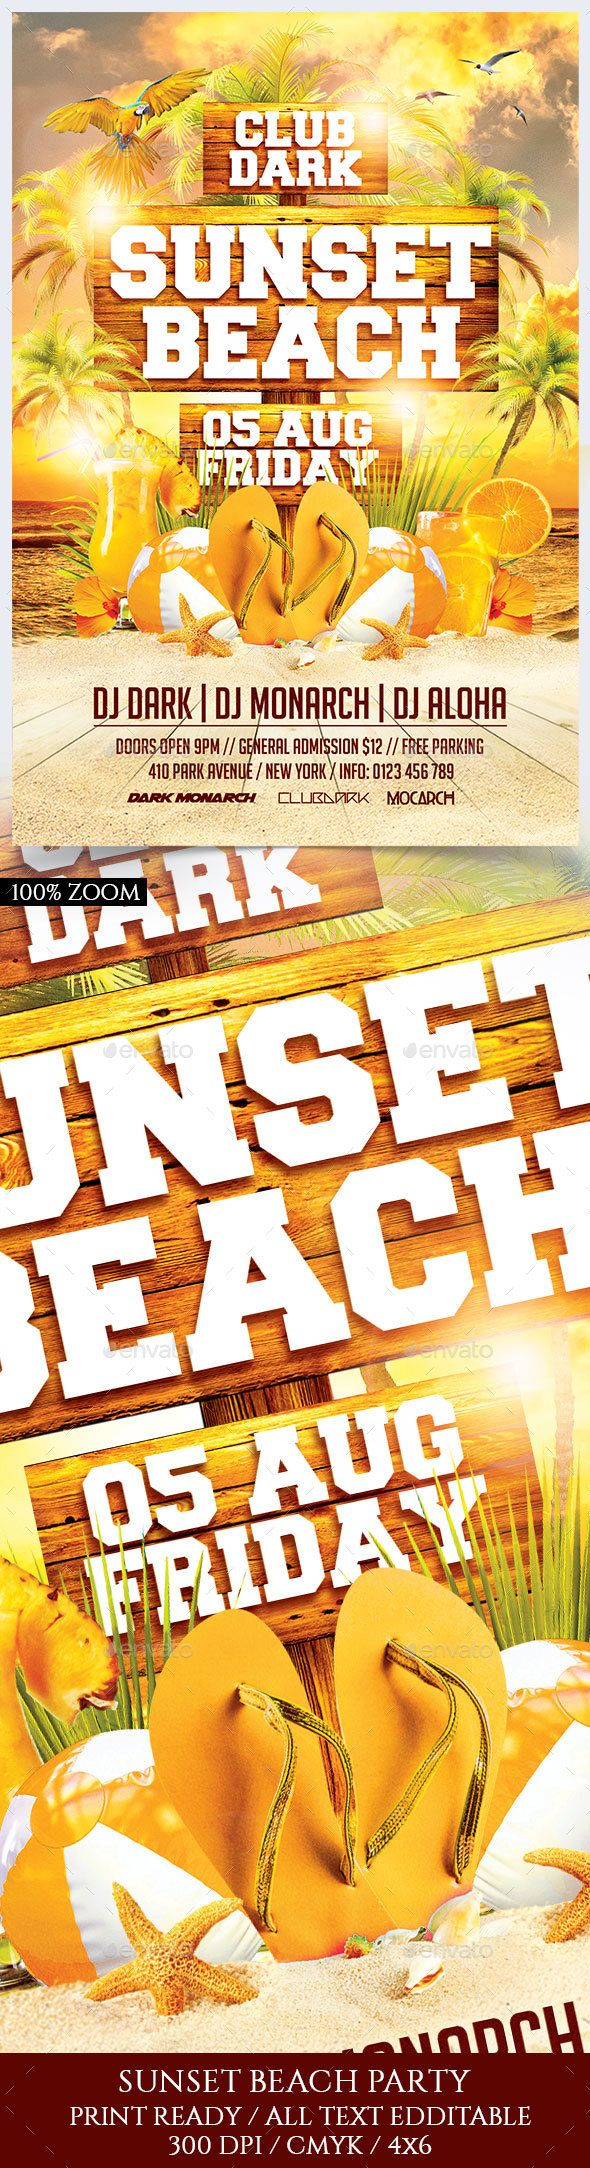 Sunset Beach Party Flyer Template PSD. Download here: https://graphicriver.net/item/sunset-beach-party/17085388?ref=ksioks